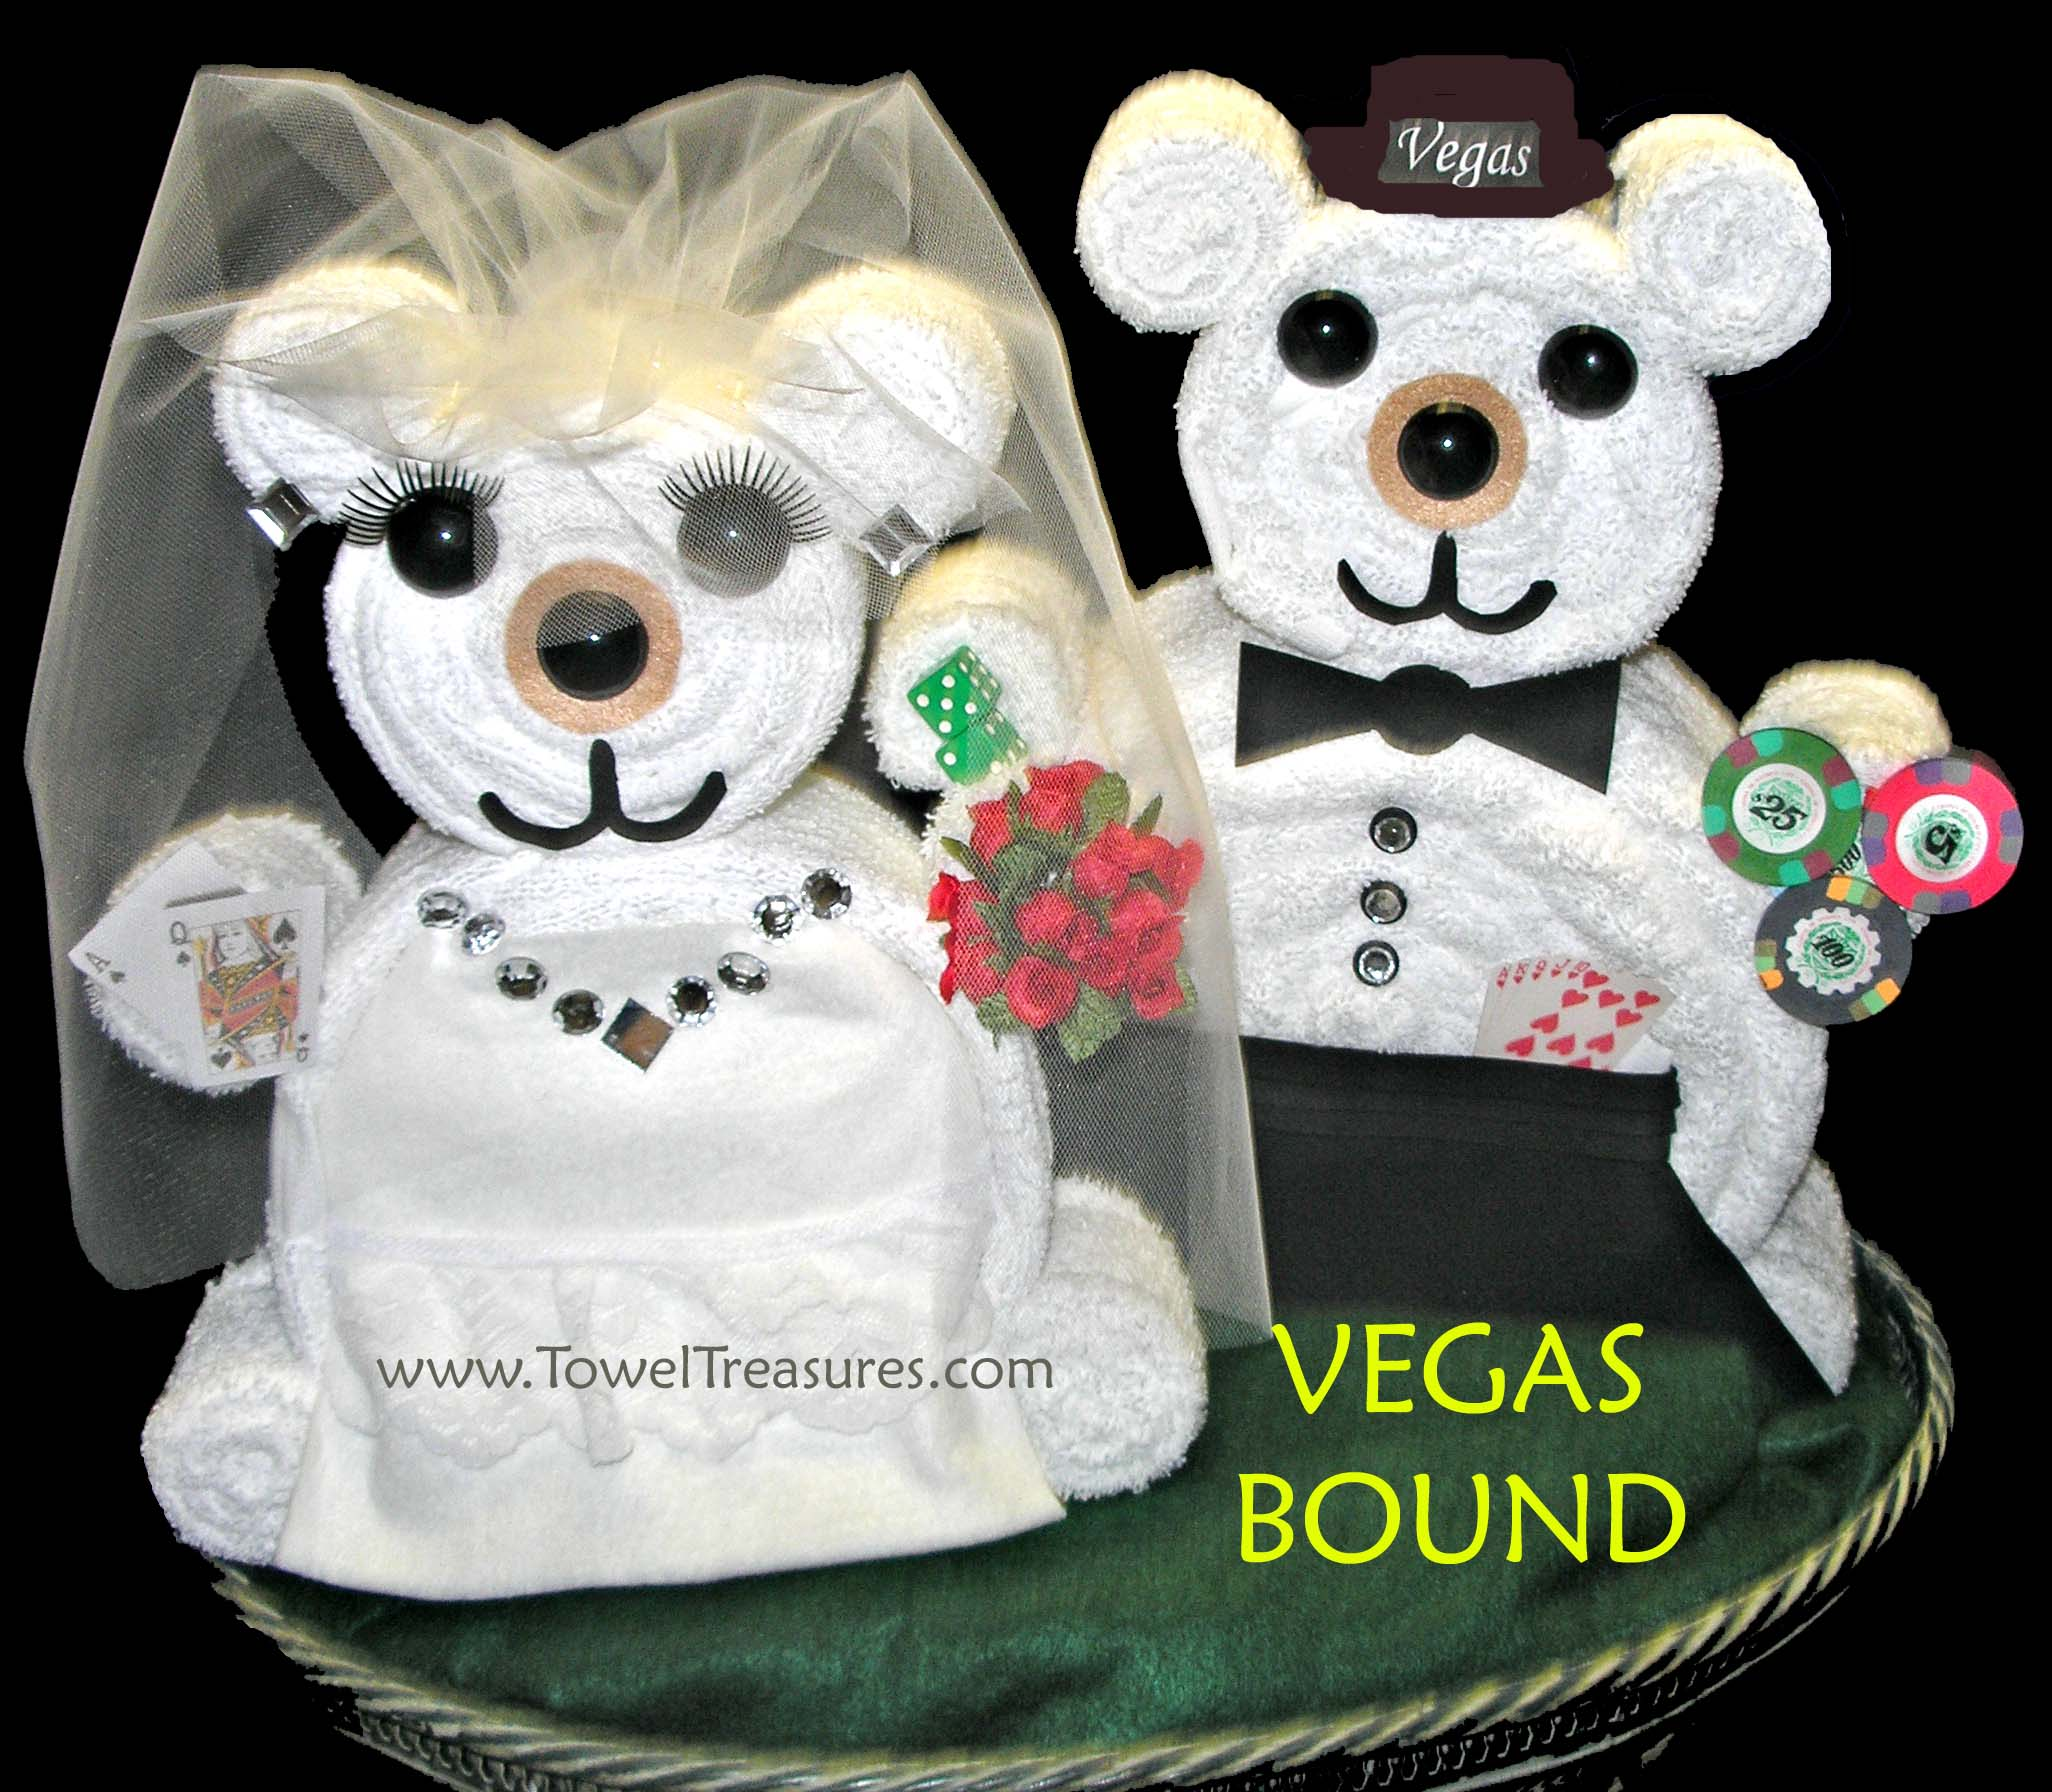 las vegas wedding gift ideas - Wedding Decor Ideas